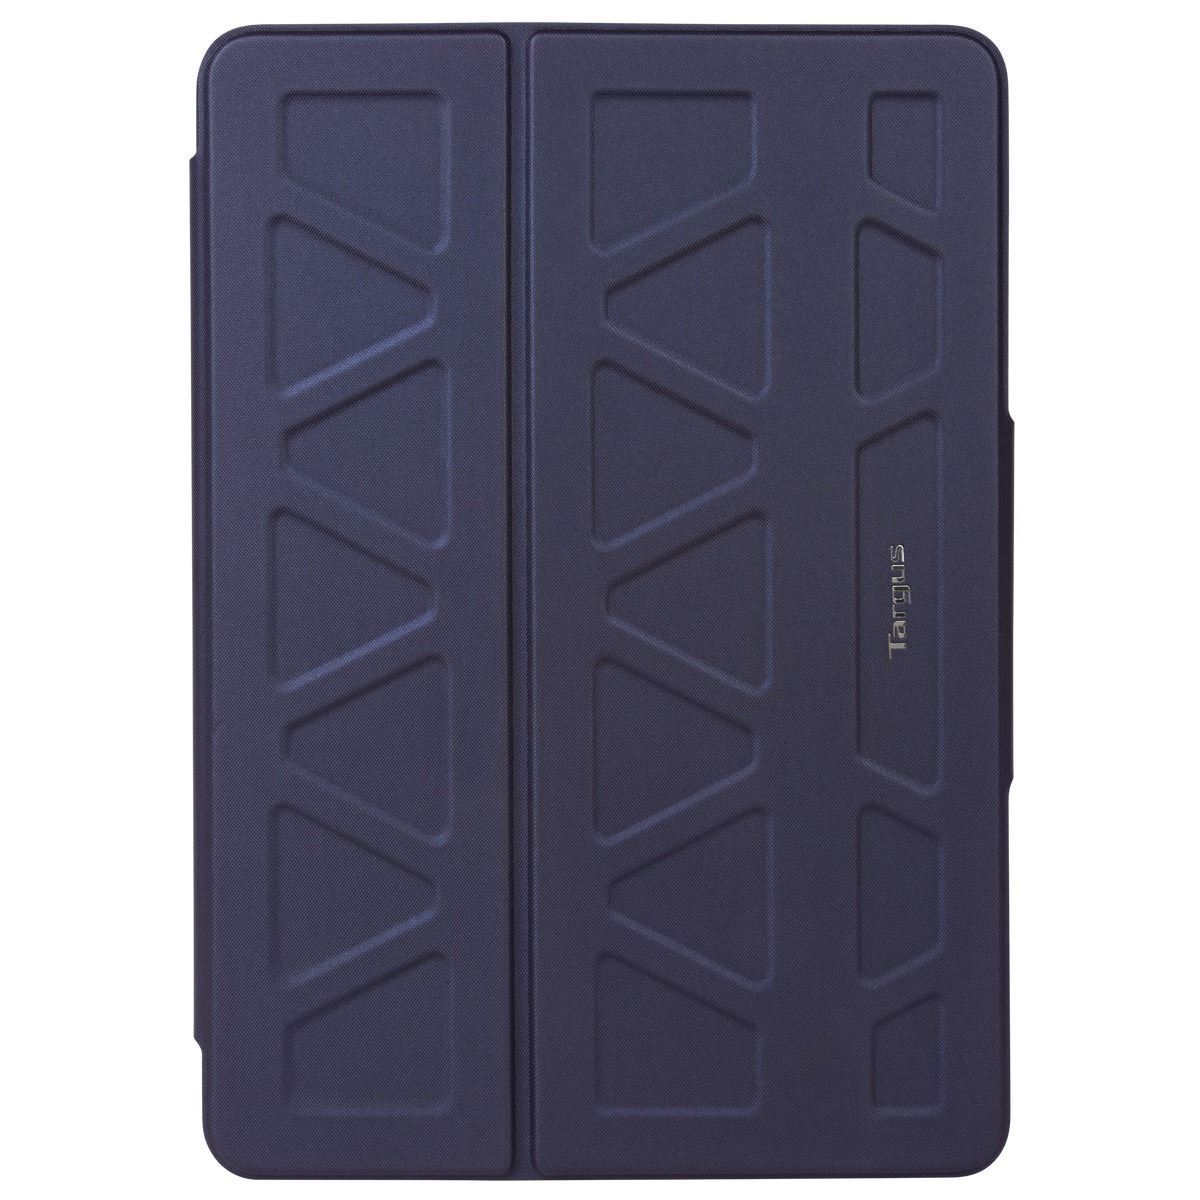 THZ6703GL Pro-Tek™ Case for 10.5-inch iPad Air® and 10.5-inch iPad Pro® (Blue)